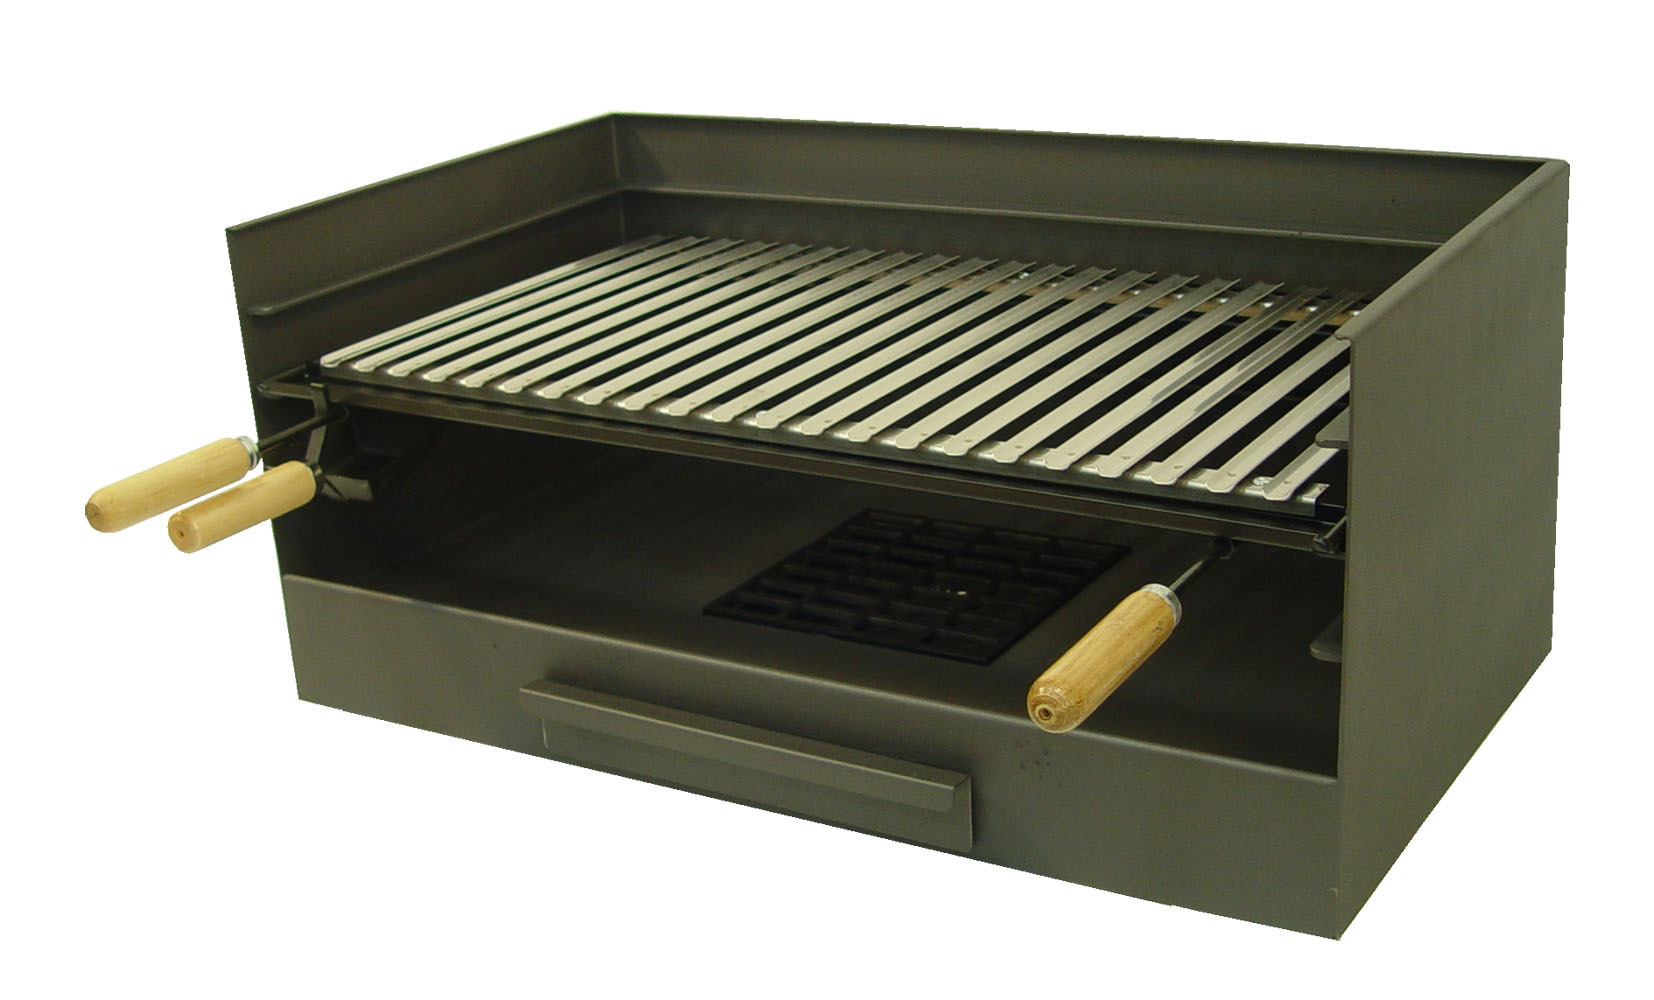 Cajon barbacoa con parrilla inox grande the barbecue store - Parrillas de barbacoa ...